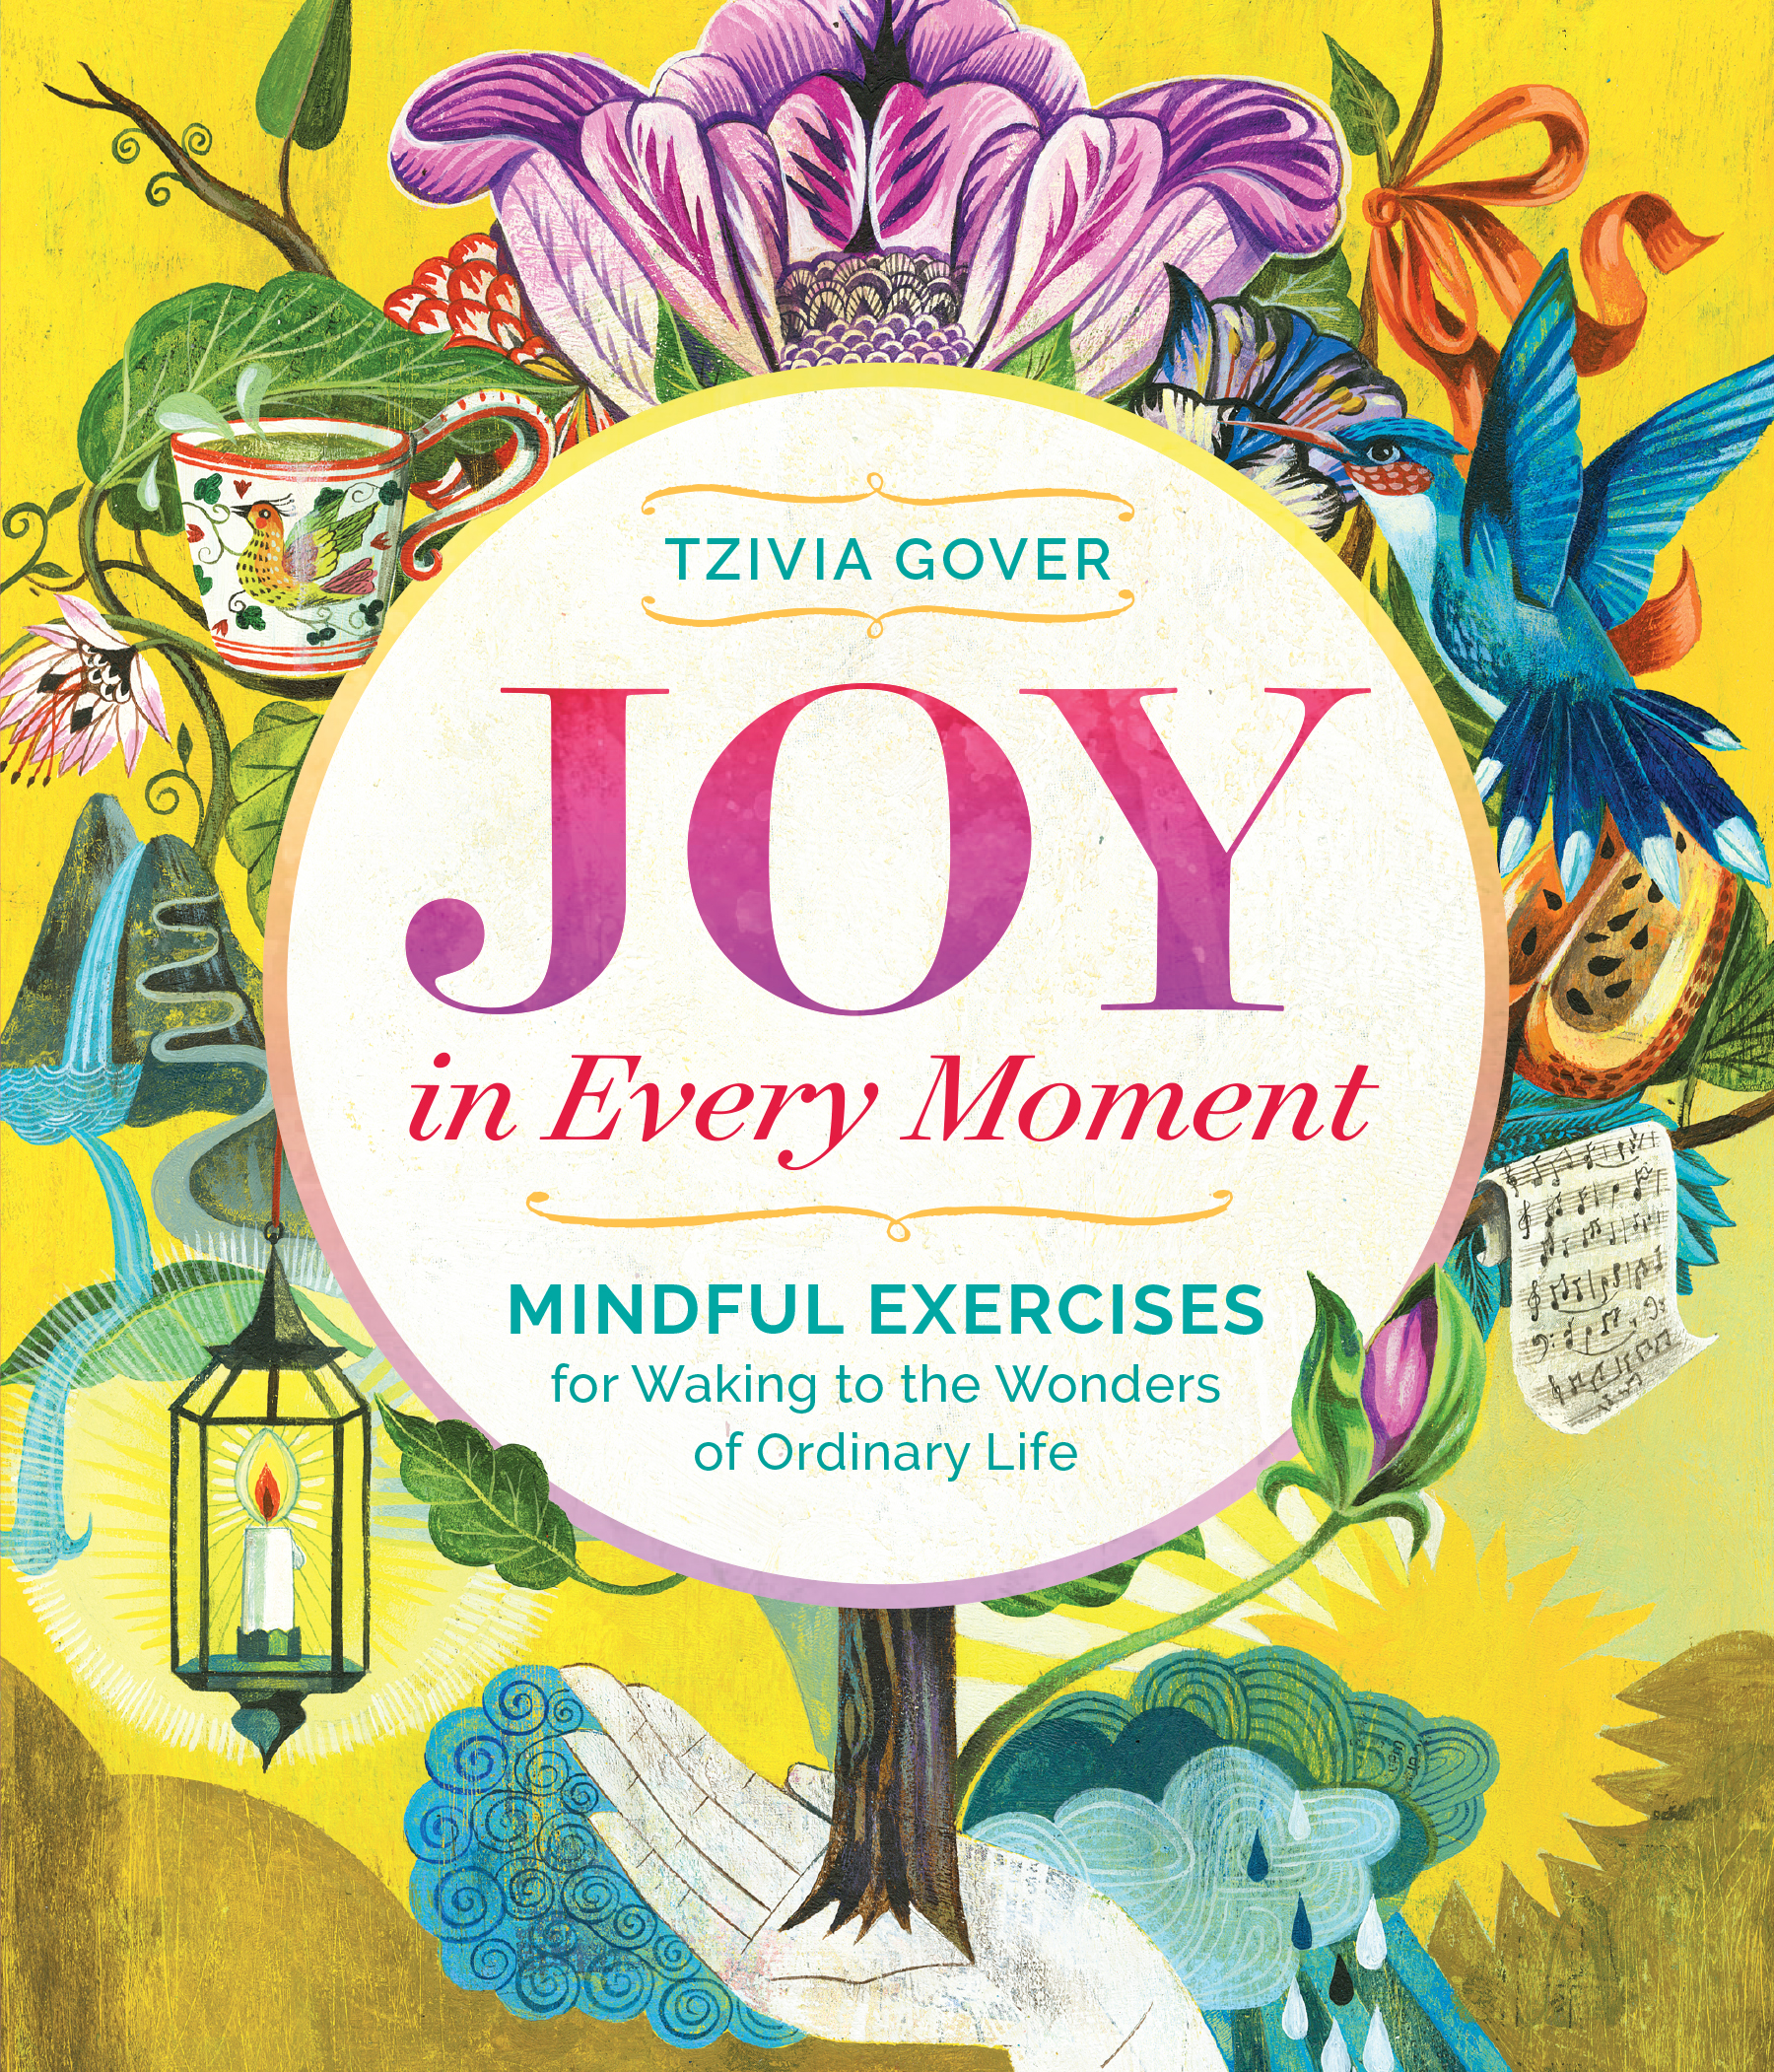 Joy in Every Moment Mindful Exercises for Waking to the Wonders of Ordinary Life - Tzivia Gover